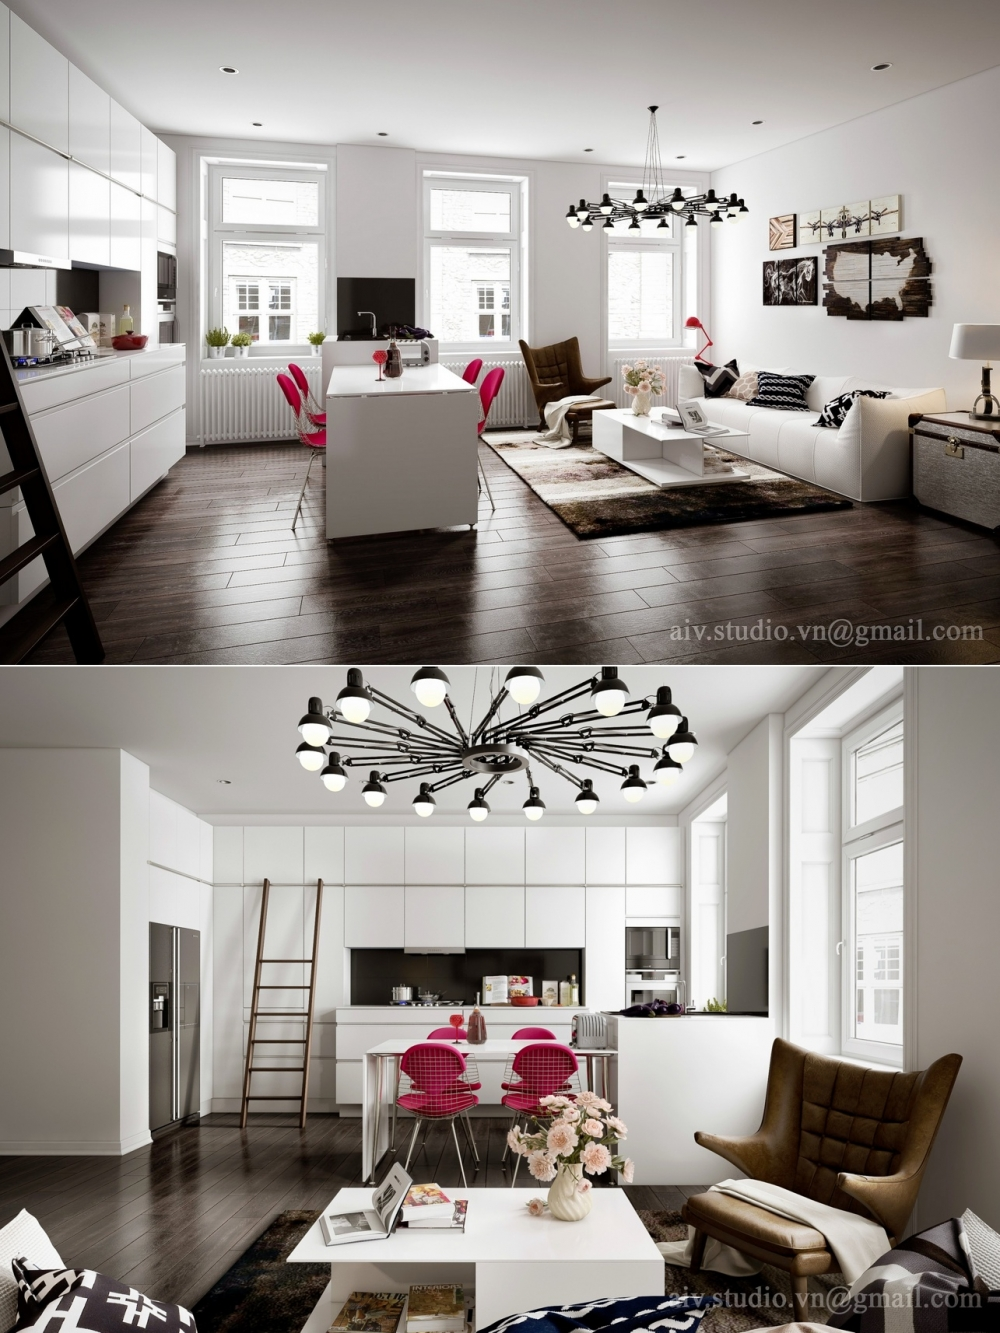 on Studio Apartment Design id=15882